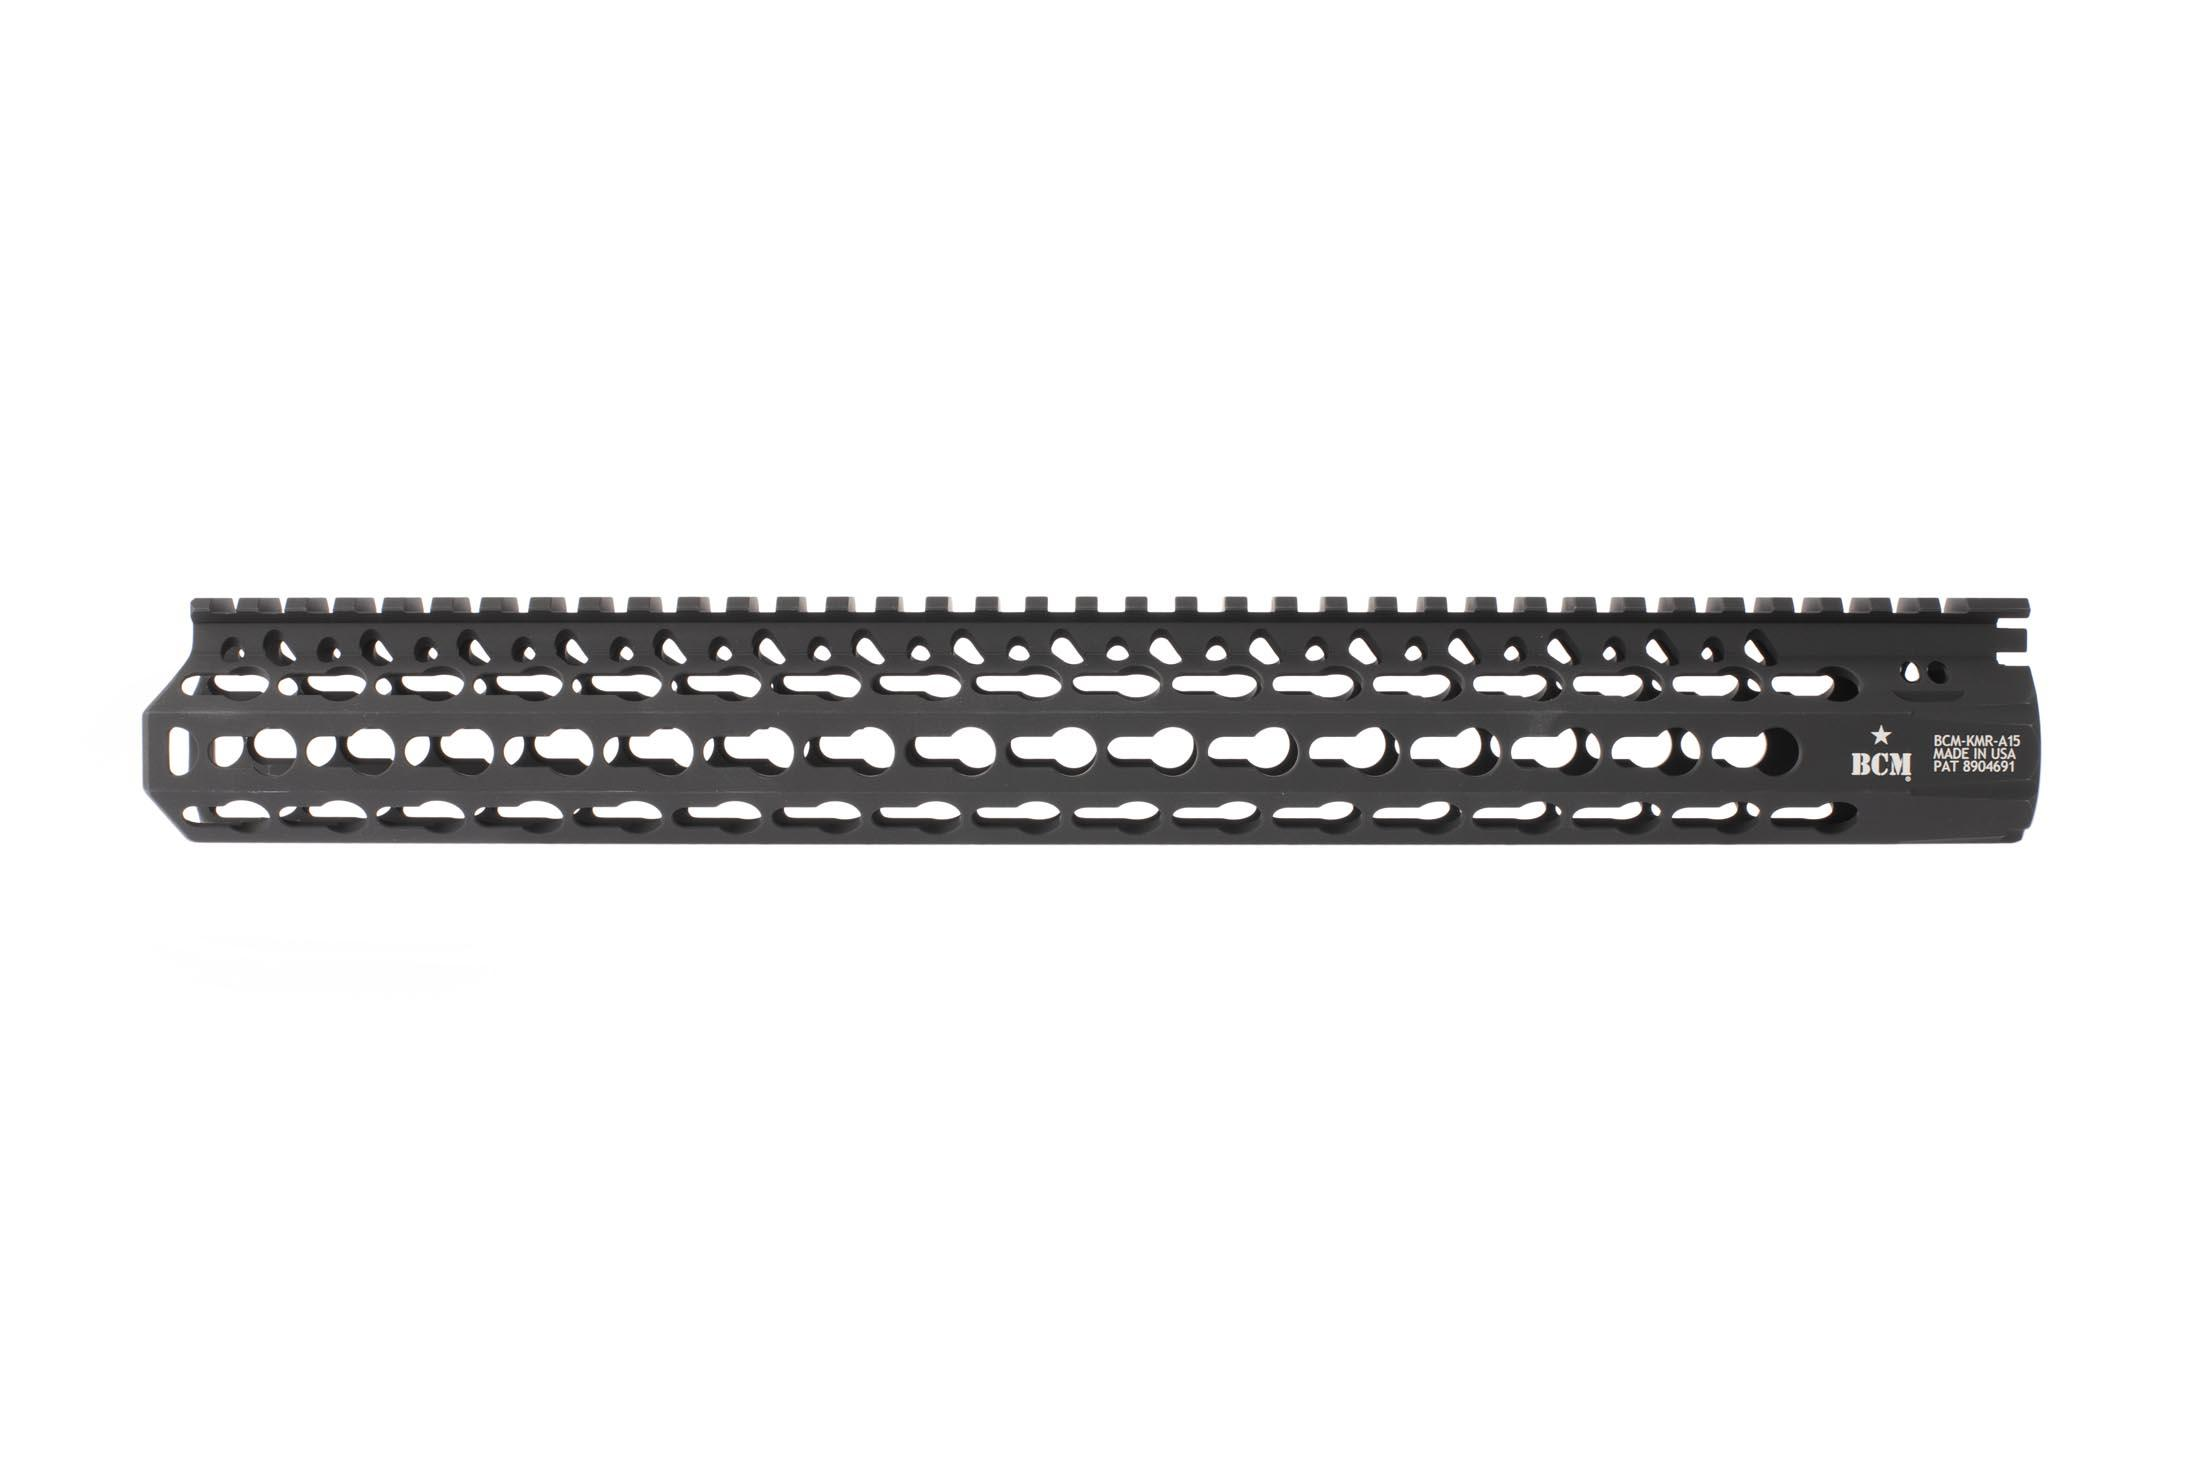 Bravo Company Mfg 15in KMR Alpha rail features a full length M1913 picatinny top rail for lights, lasers, and sights